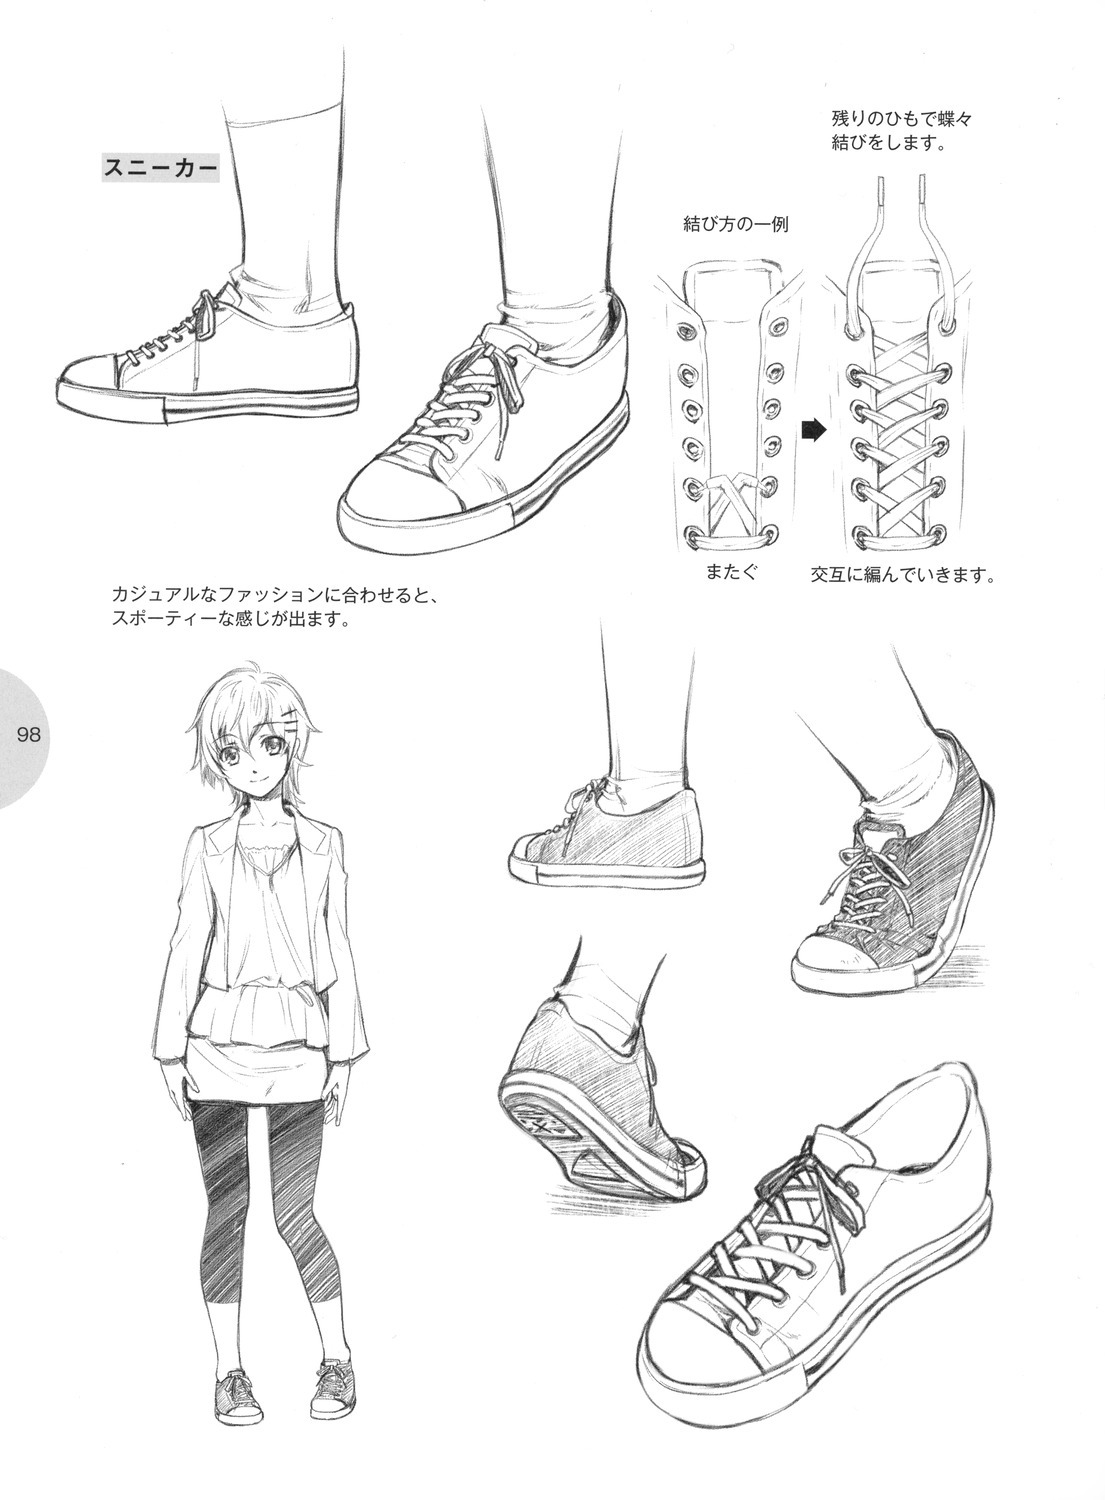 Drawn shoe anime guy Draw shoe drawing Feet lace